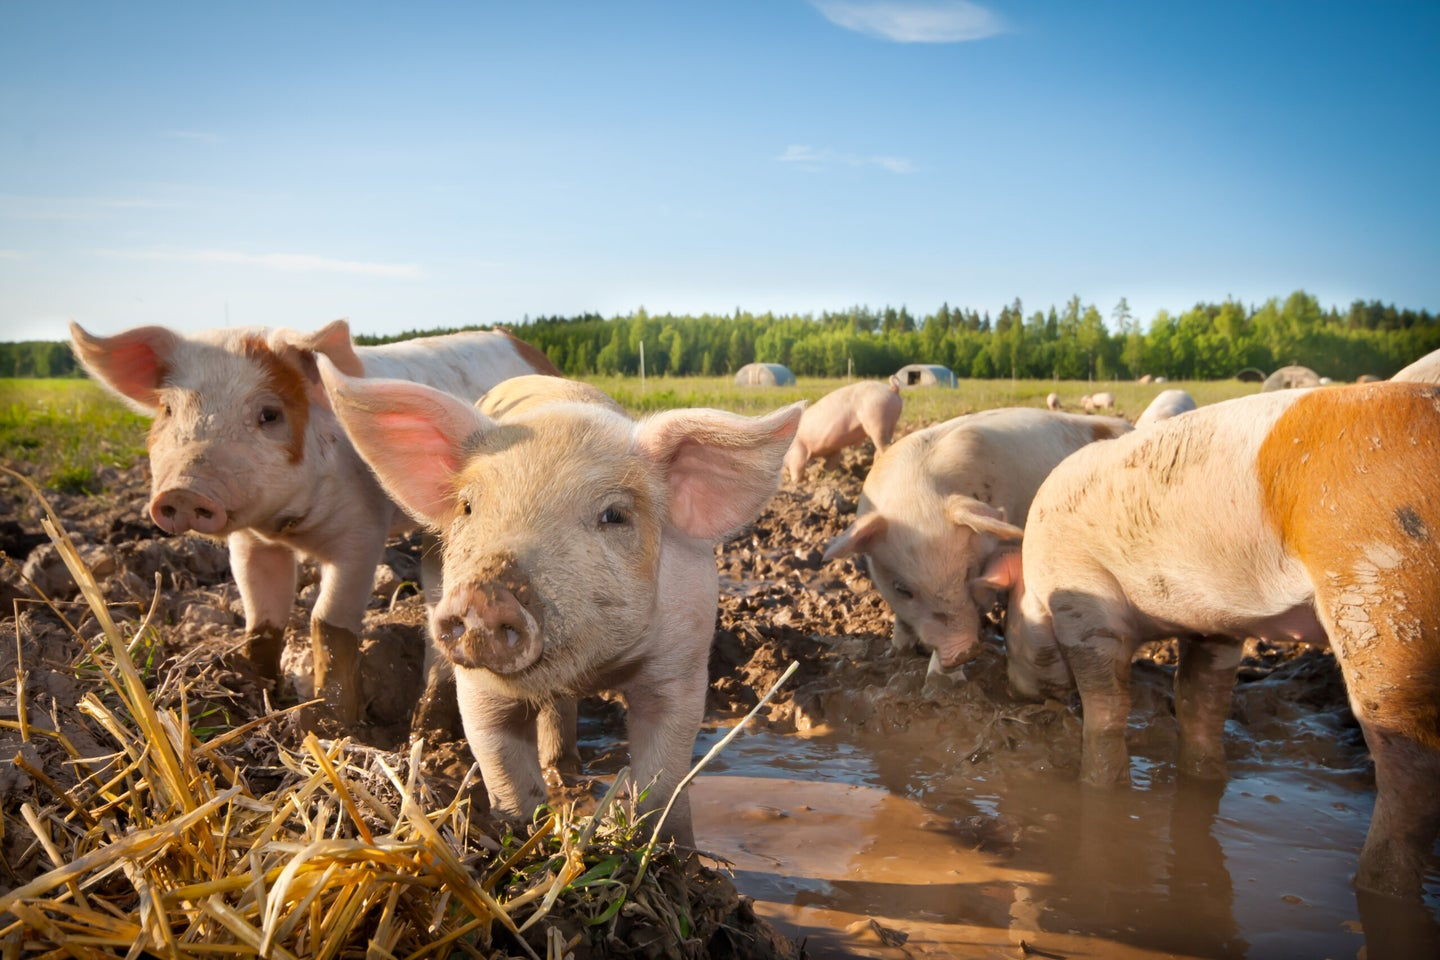 African swine fever has killed a million pigs—and isn't slowing down